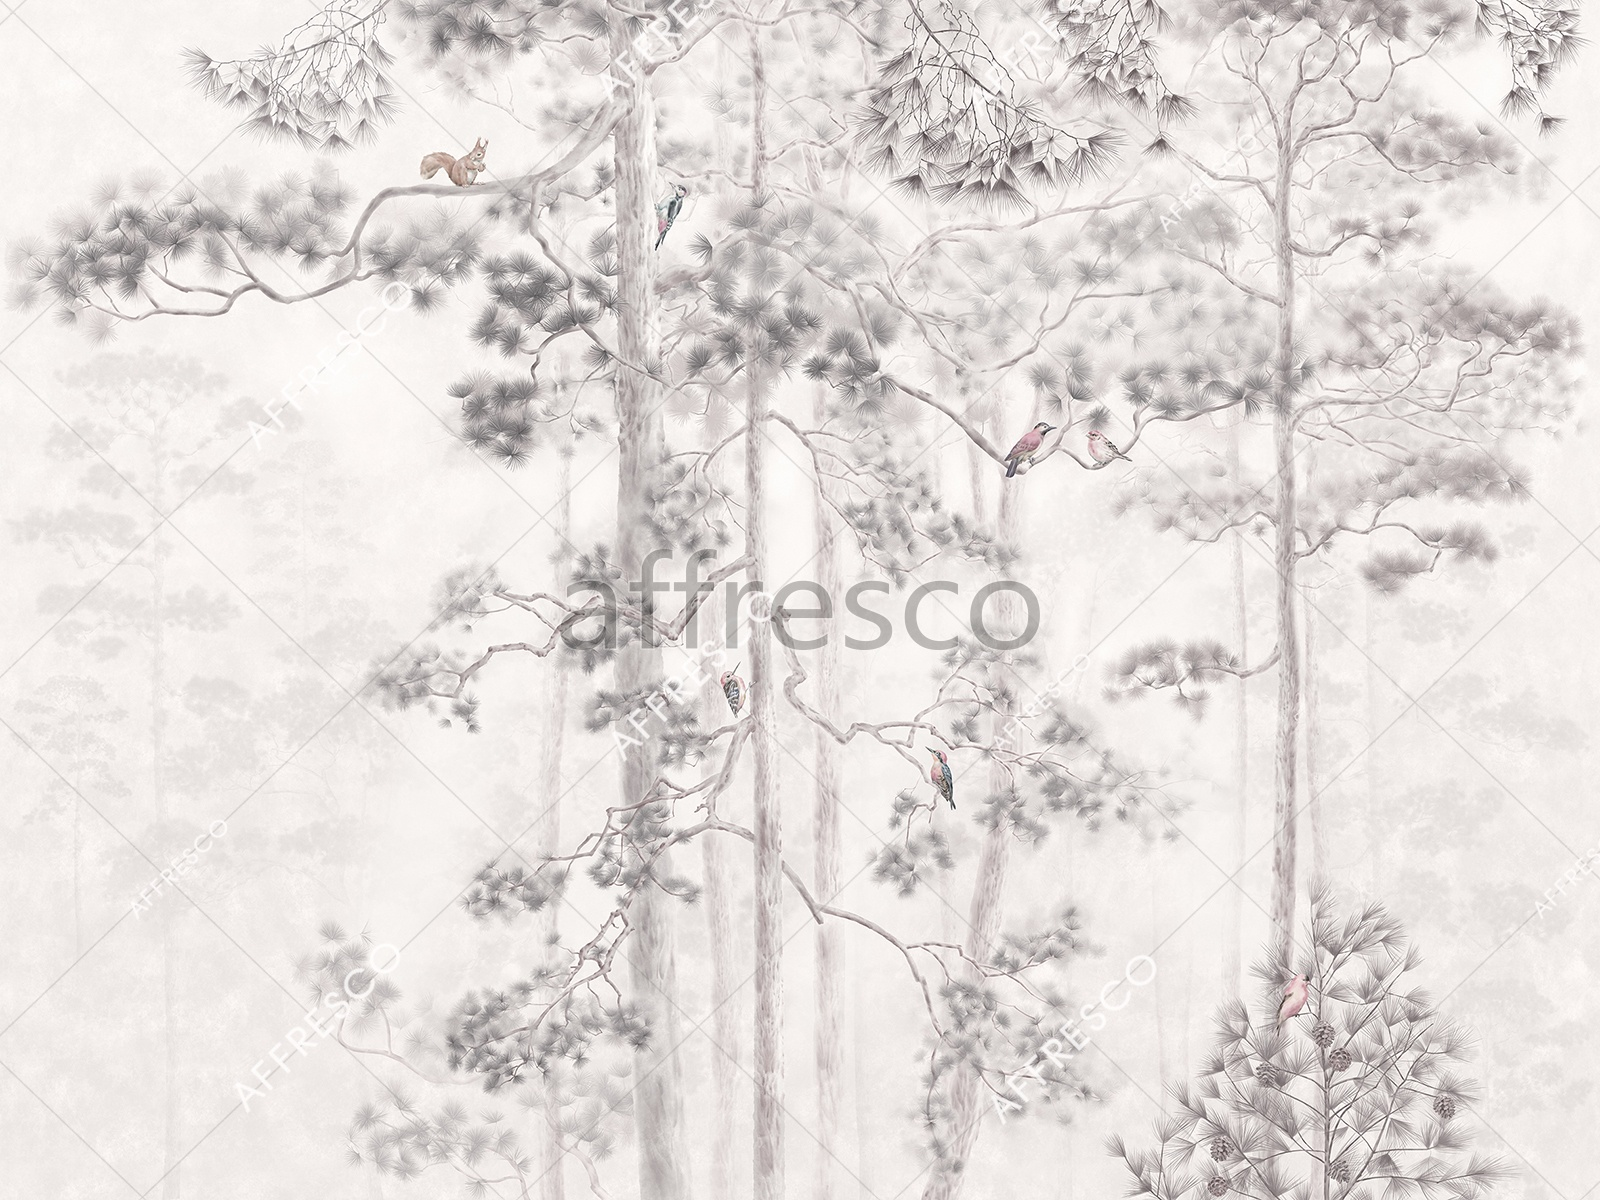 AF518-COL2 | Atmosphere | Affresco Factory